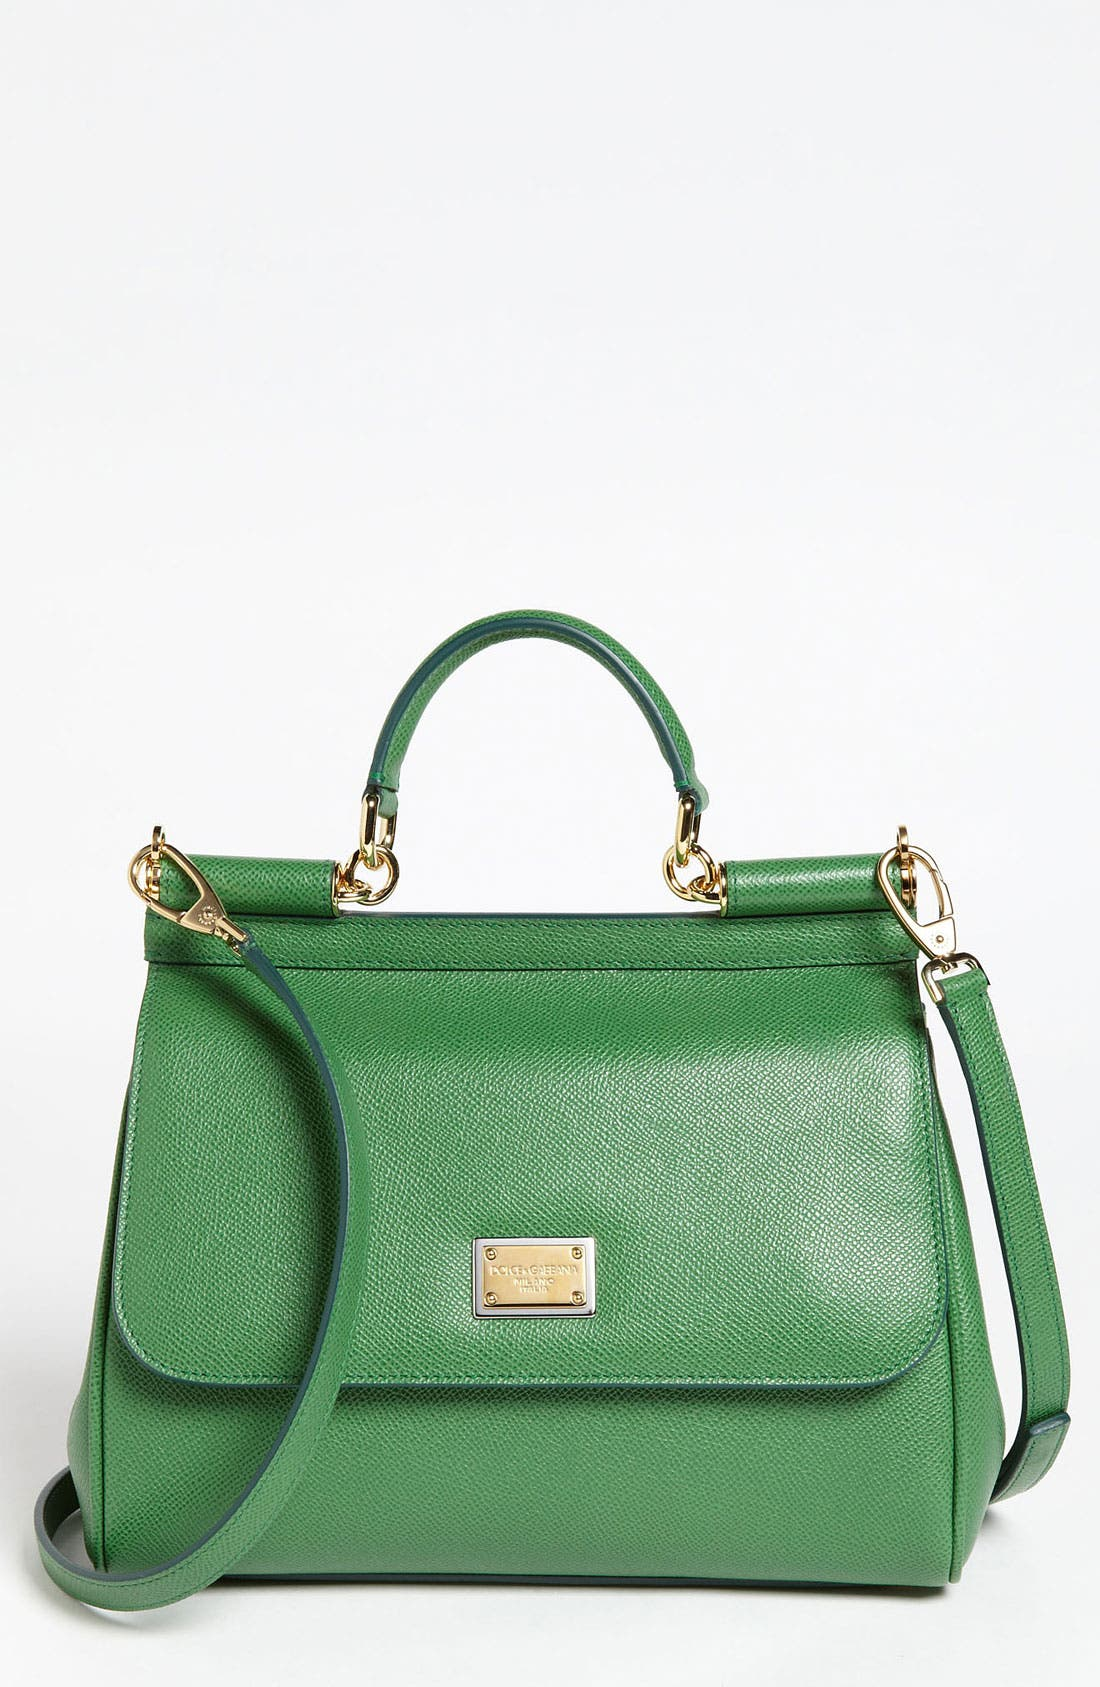 Alternate Image 1 Selected - Dolce&Gabbana 'Miss Sicily - Small' Leather Satchel